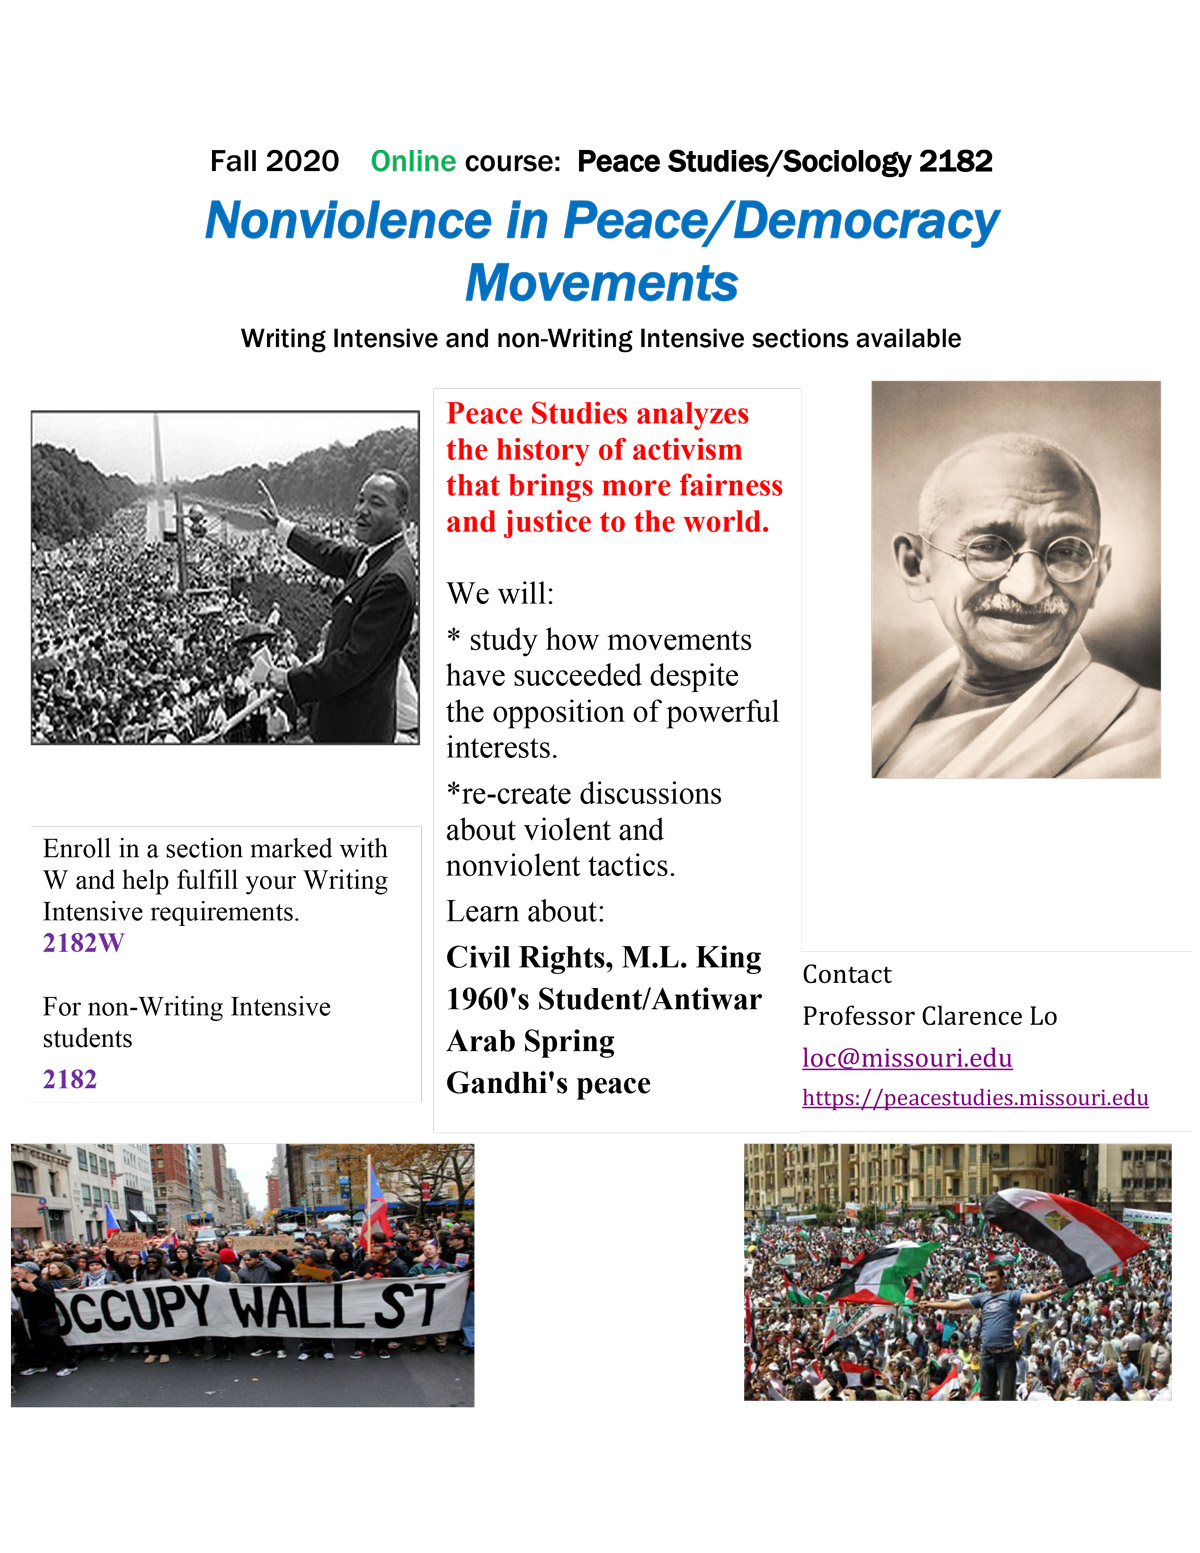 PEA_ST 2182 and 2182W, cross-listed.   Democracy Movements.  100% Online